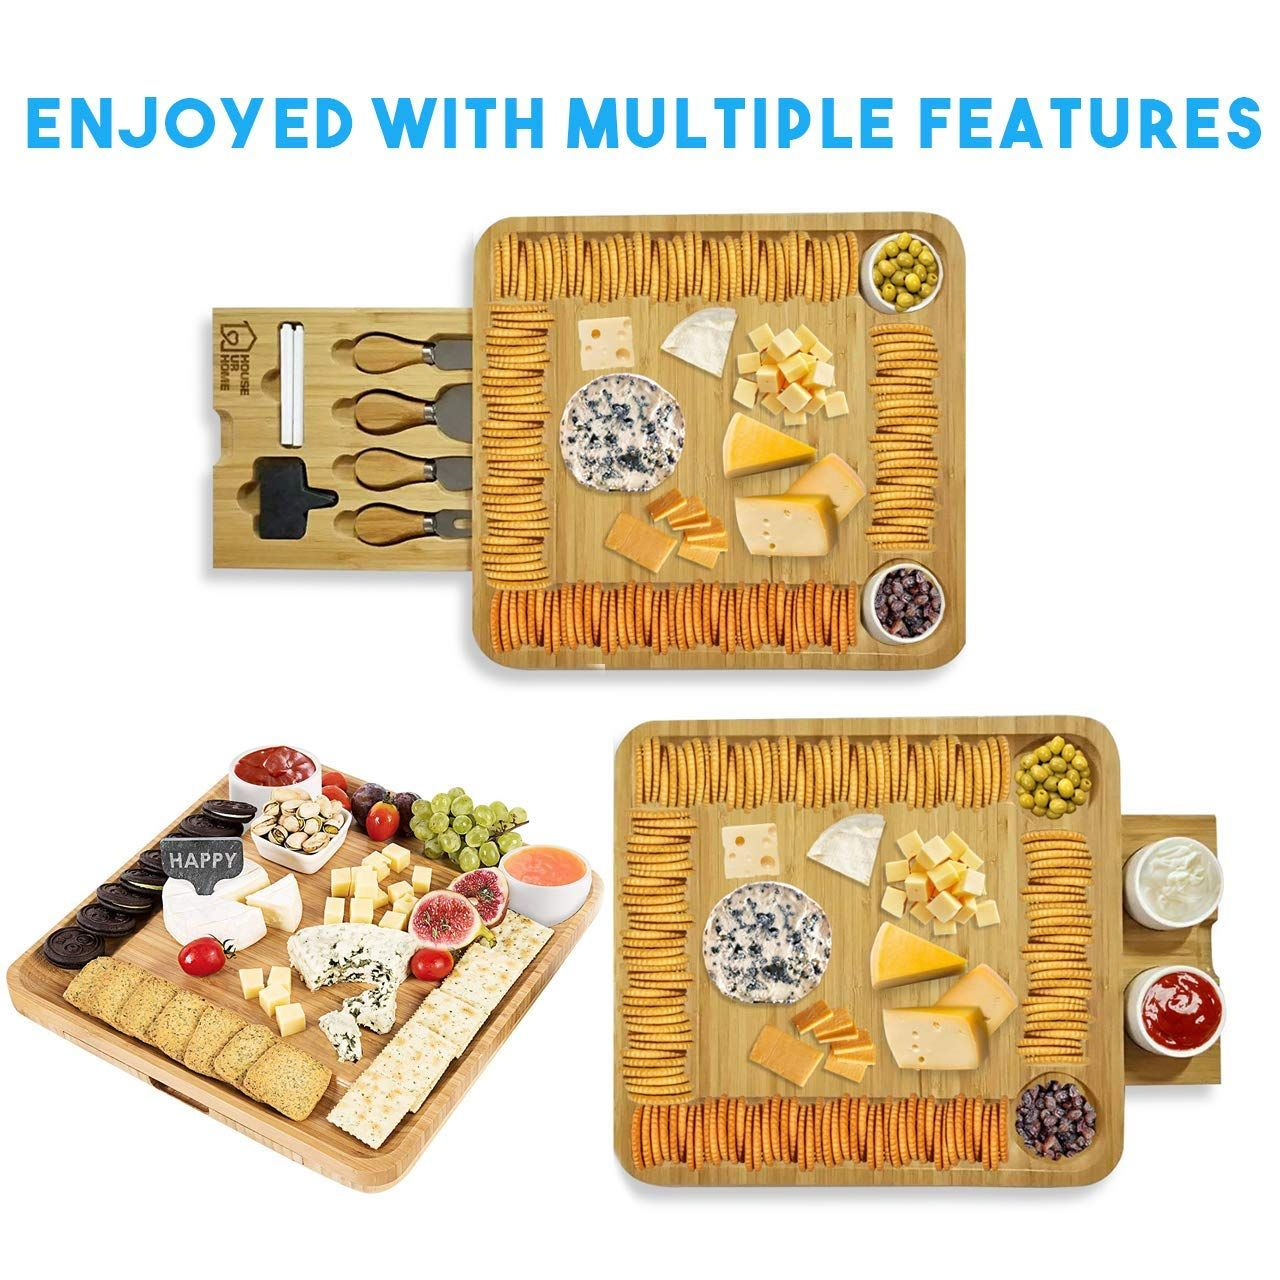 Bamboo Cheese Board Wooden Two Ceramic Bowls